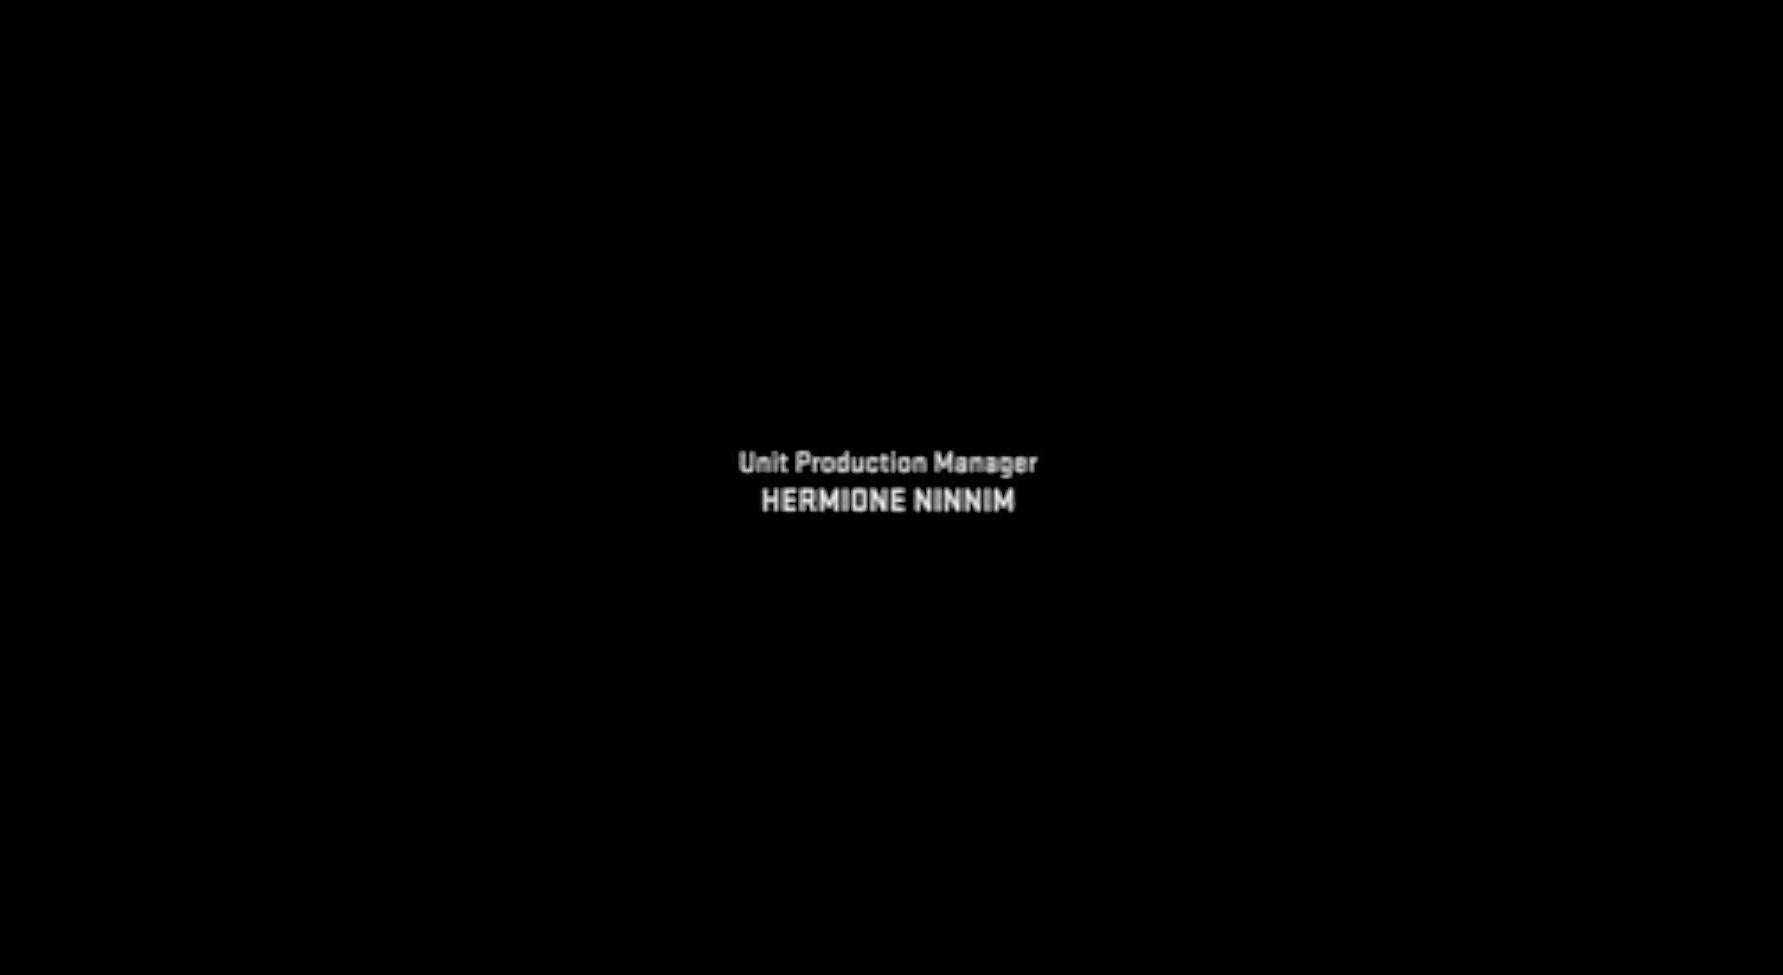 why is the unit production manager often first in film credits